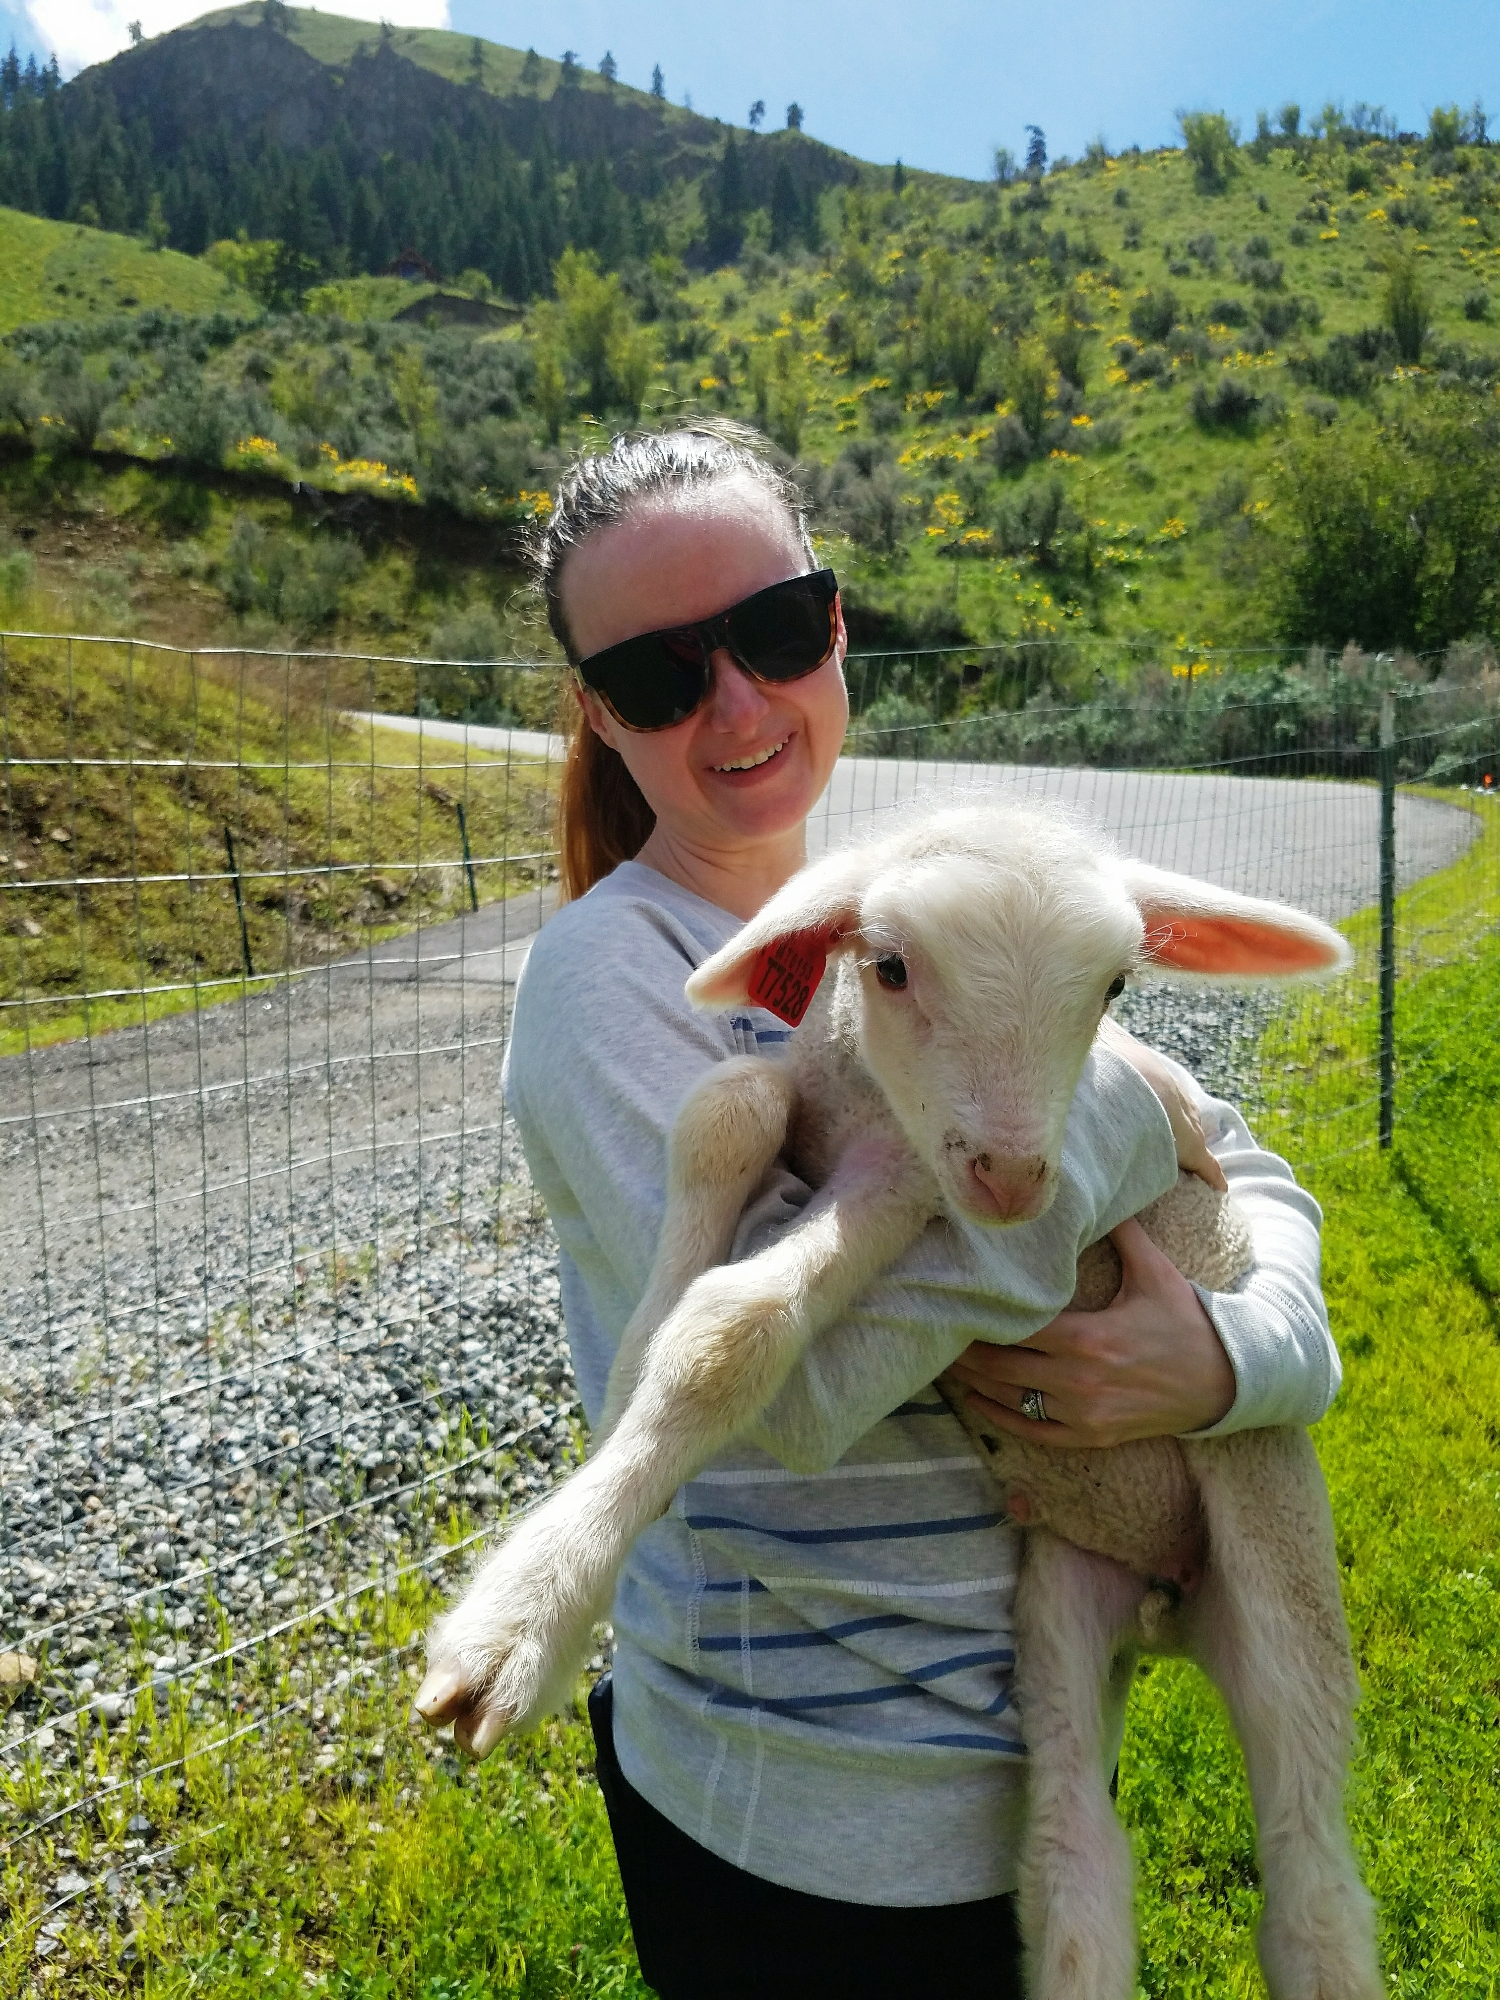 I think I may have been more excited about the lambs than my niece. So fleecy!